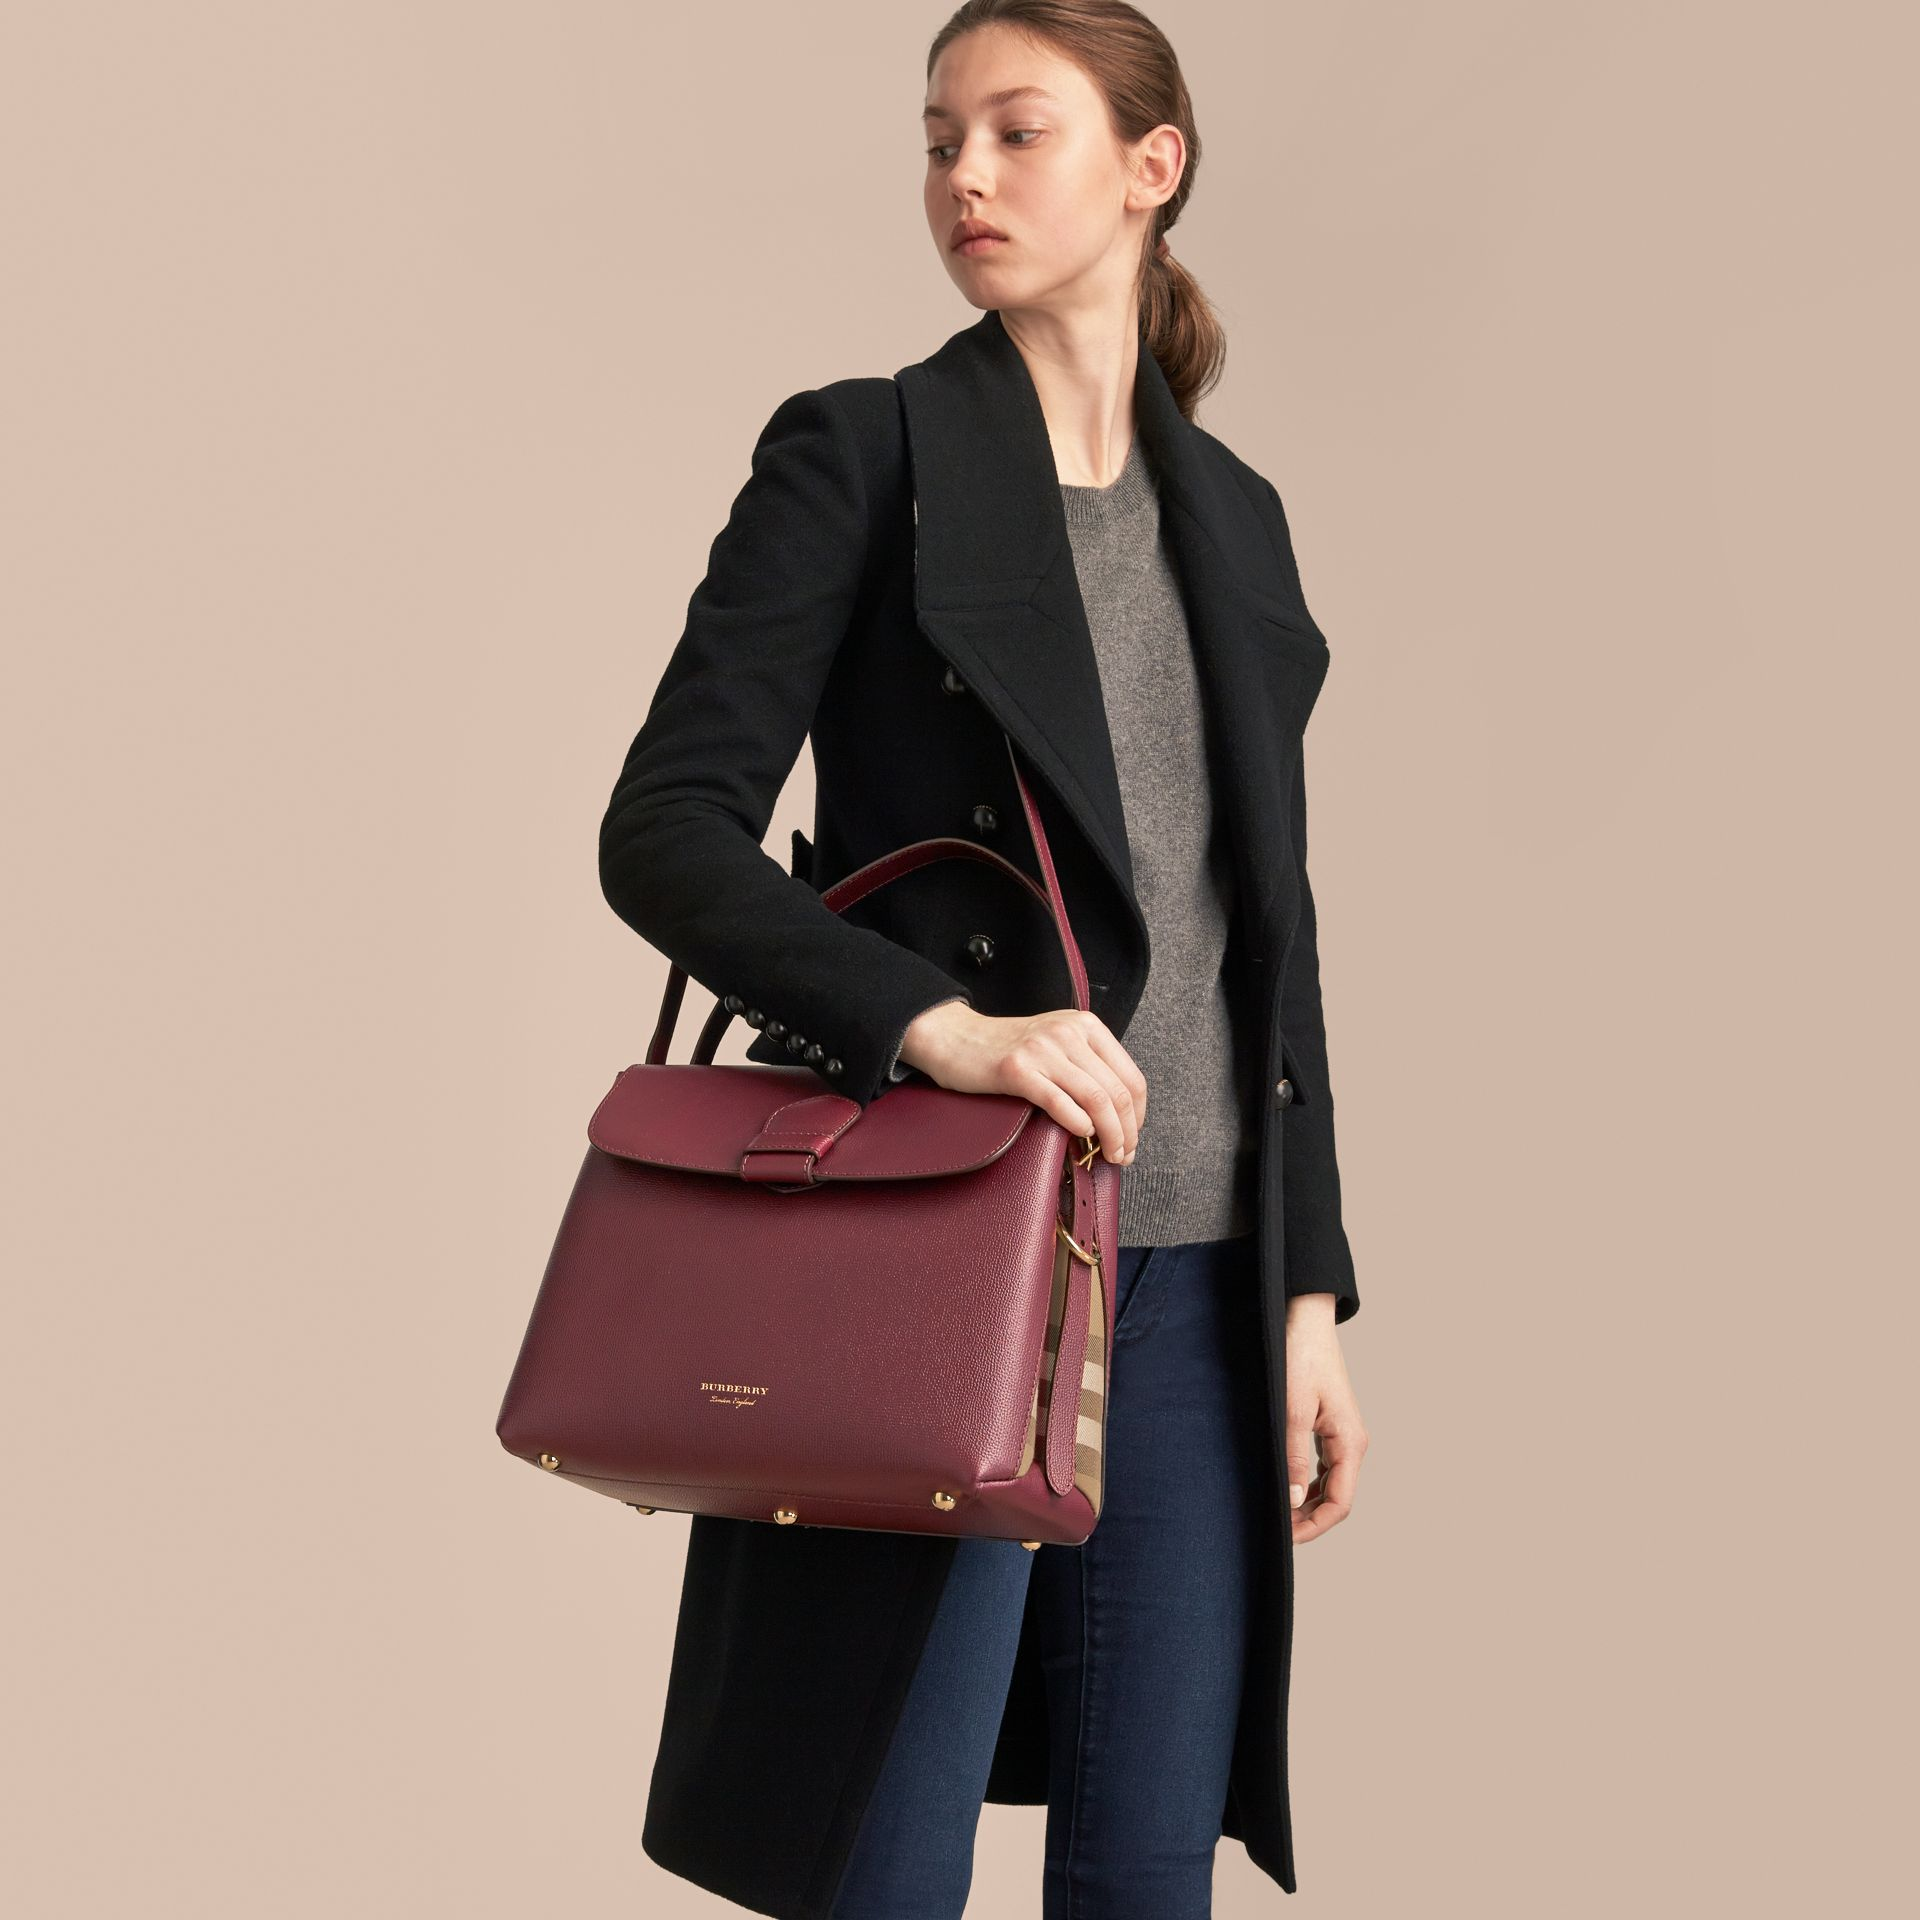 Medium Grainy Leather and House Check Tote Bag in Mahogany Red - Women | Burberry United States - gallery image 2